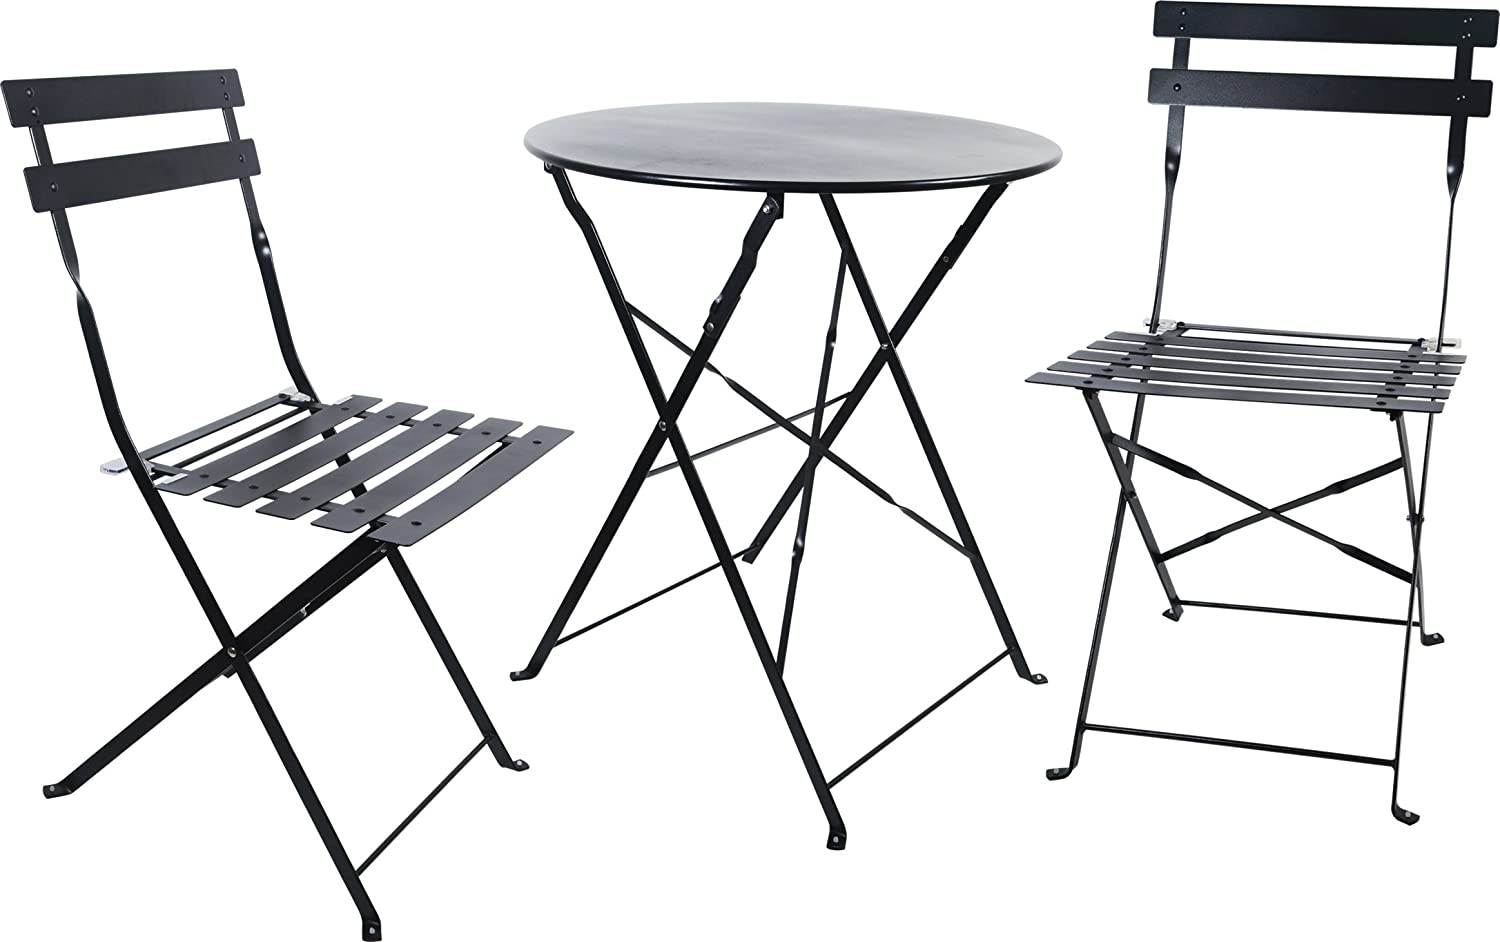 Amazon com   Carlota Furniture Outdoor Bistro Set  Features 1 Folding Table  and 2 Folding Chairs with Safe Locks  Black  3 Piece   Garden   Outdoor. Amazon com   Carlota Furniture Outdoor Bistro Set  Features 1